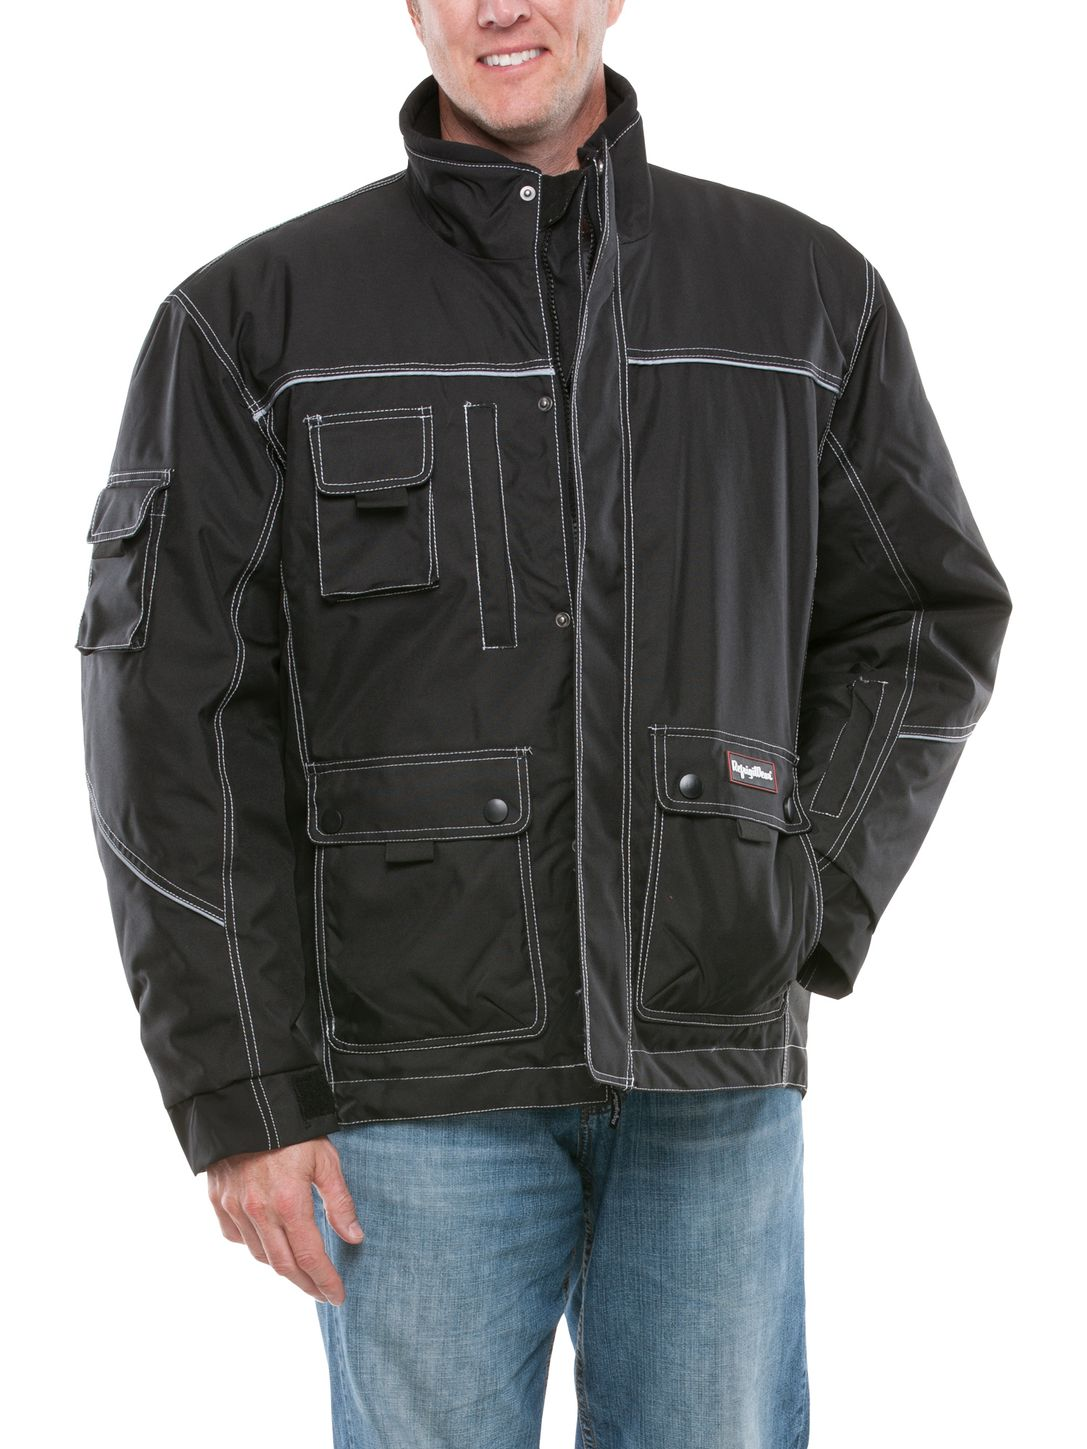 refrigiwear-8042-ergoforce-jacket-front-view.jpg